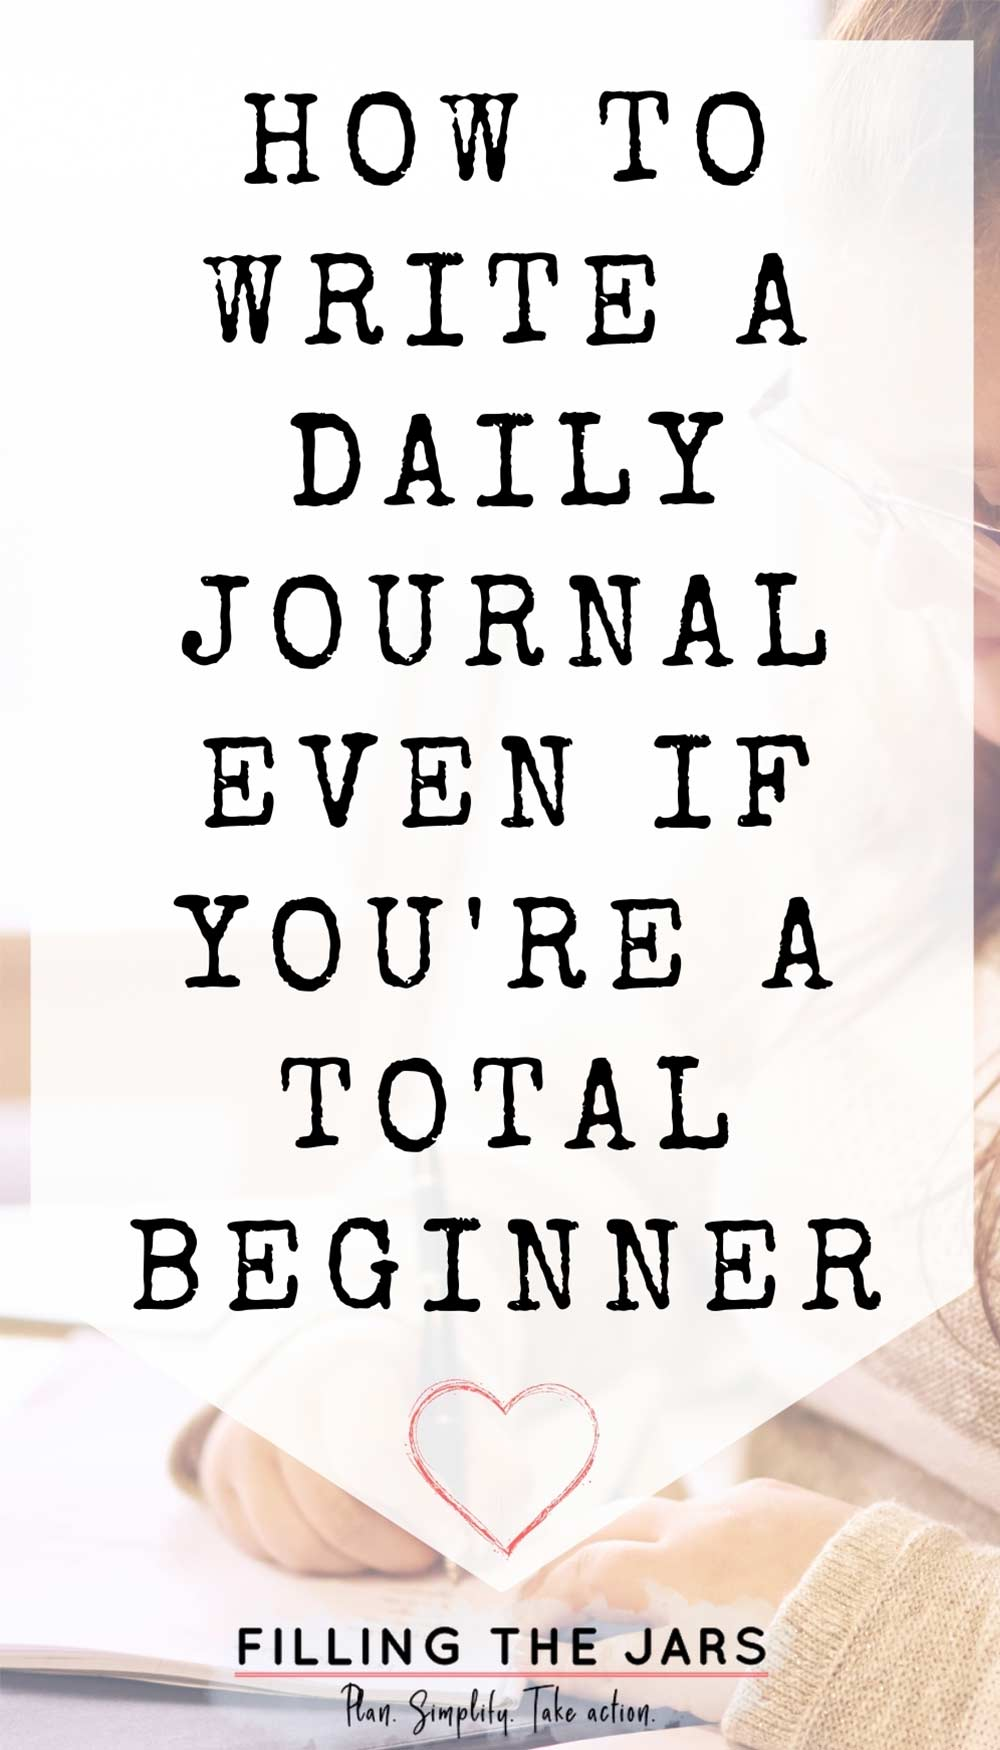 Text how to write a daily journal for beginners on white background over image of woman with long dark hair wearing a sweater and glasses sitting at a table and writing.